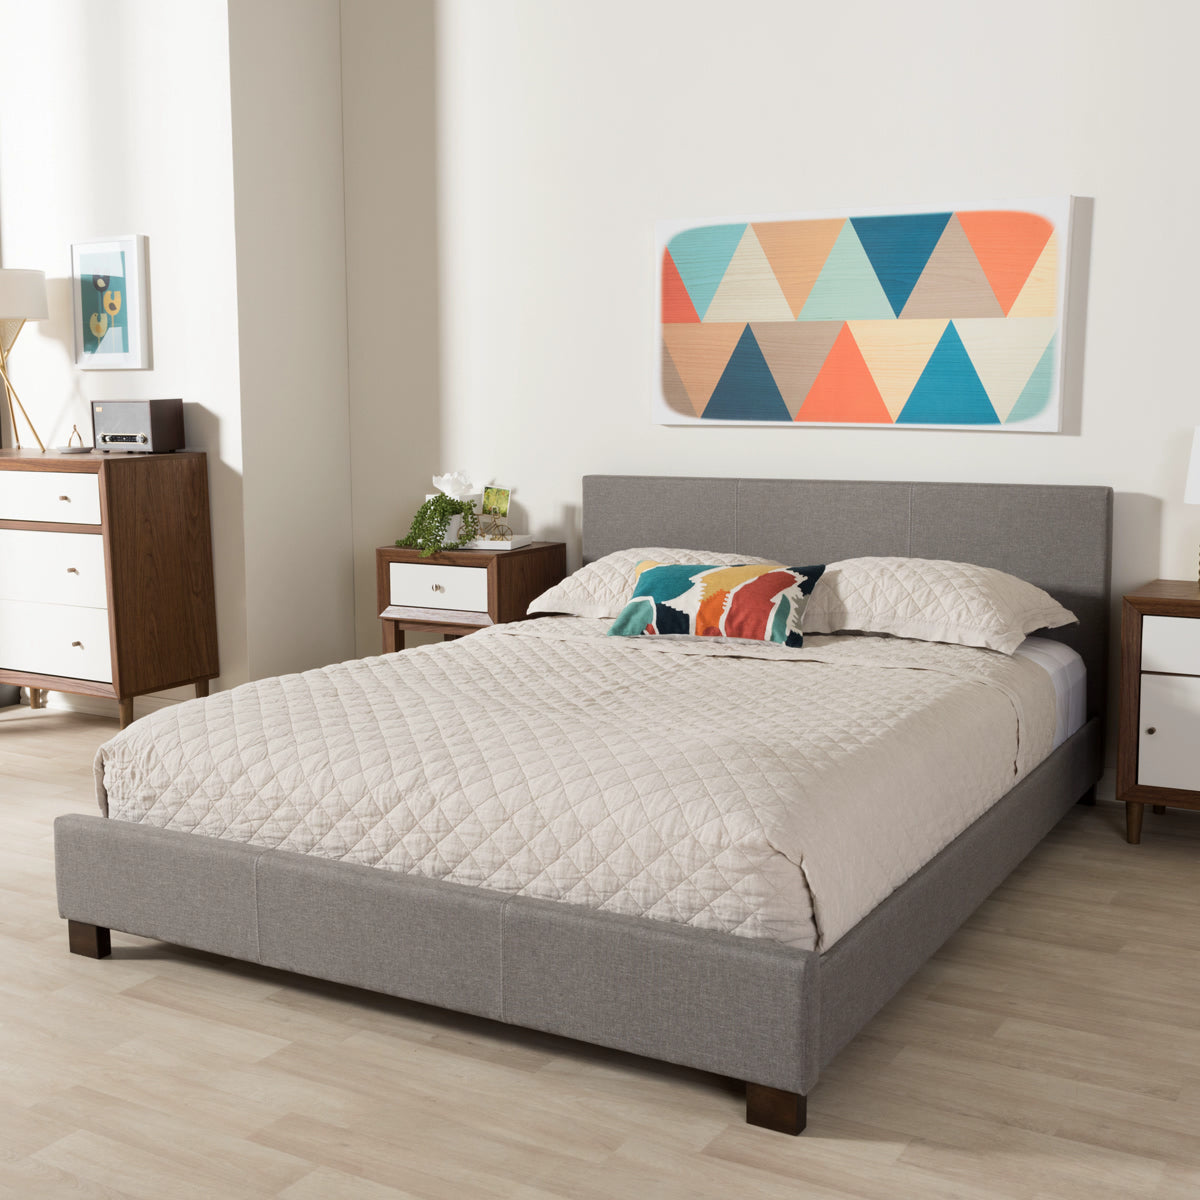 Baxton Studio Elizabeth Modern and Contemporary Grey Fabric Upholstered Panel-Stitched Queen Size Platform Bed Baxton Studio-Queen Bed-Minimal And Modern - 1